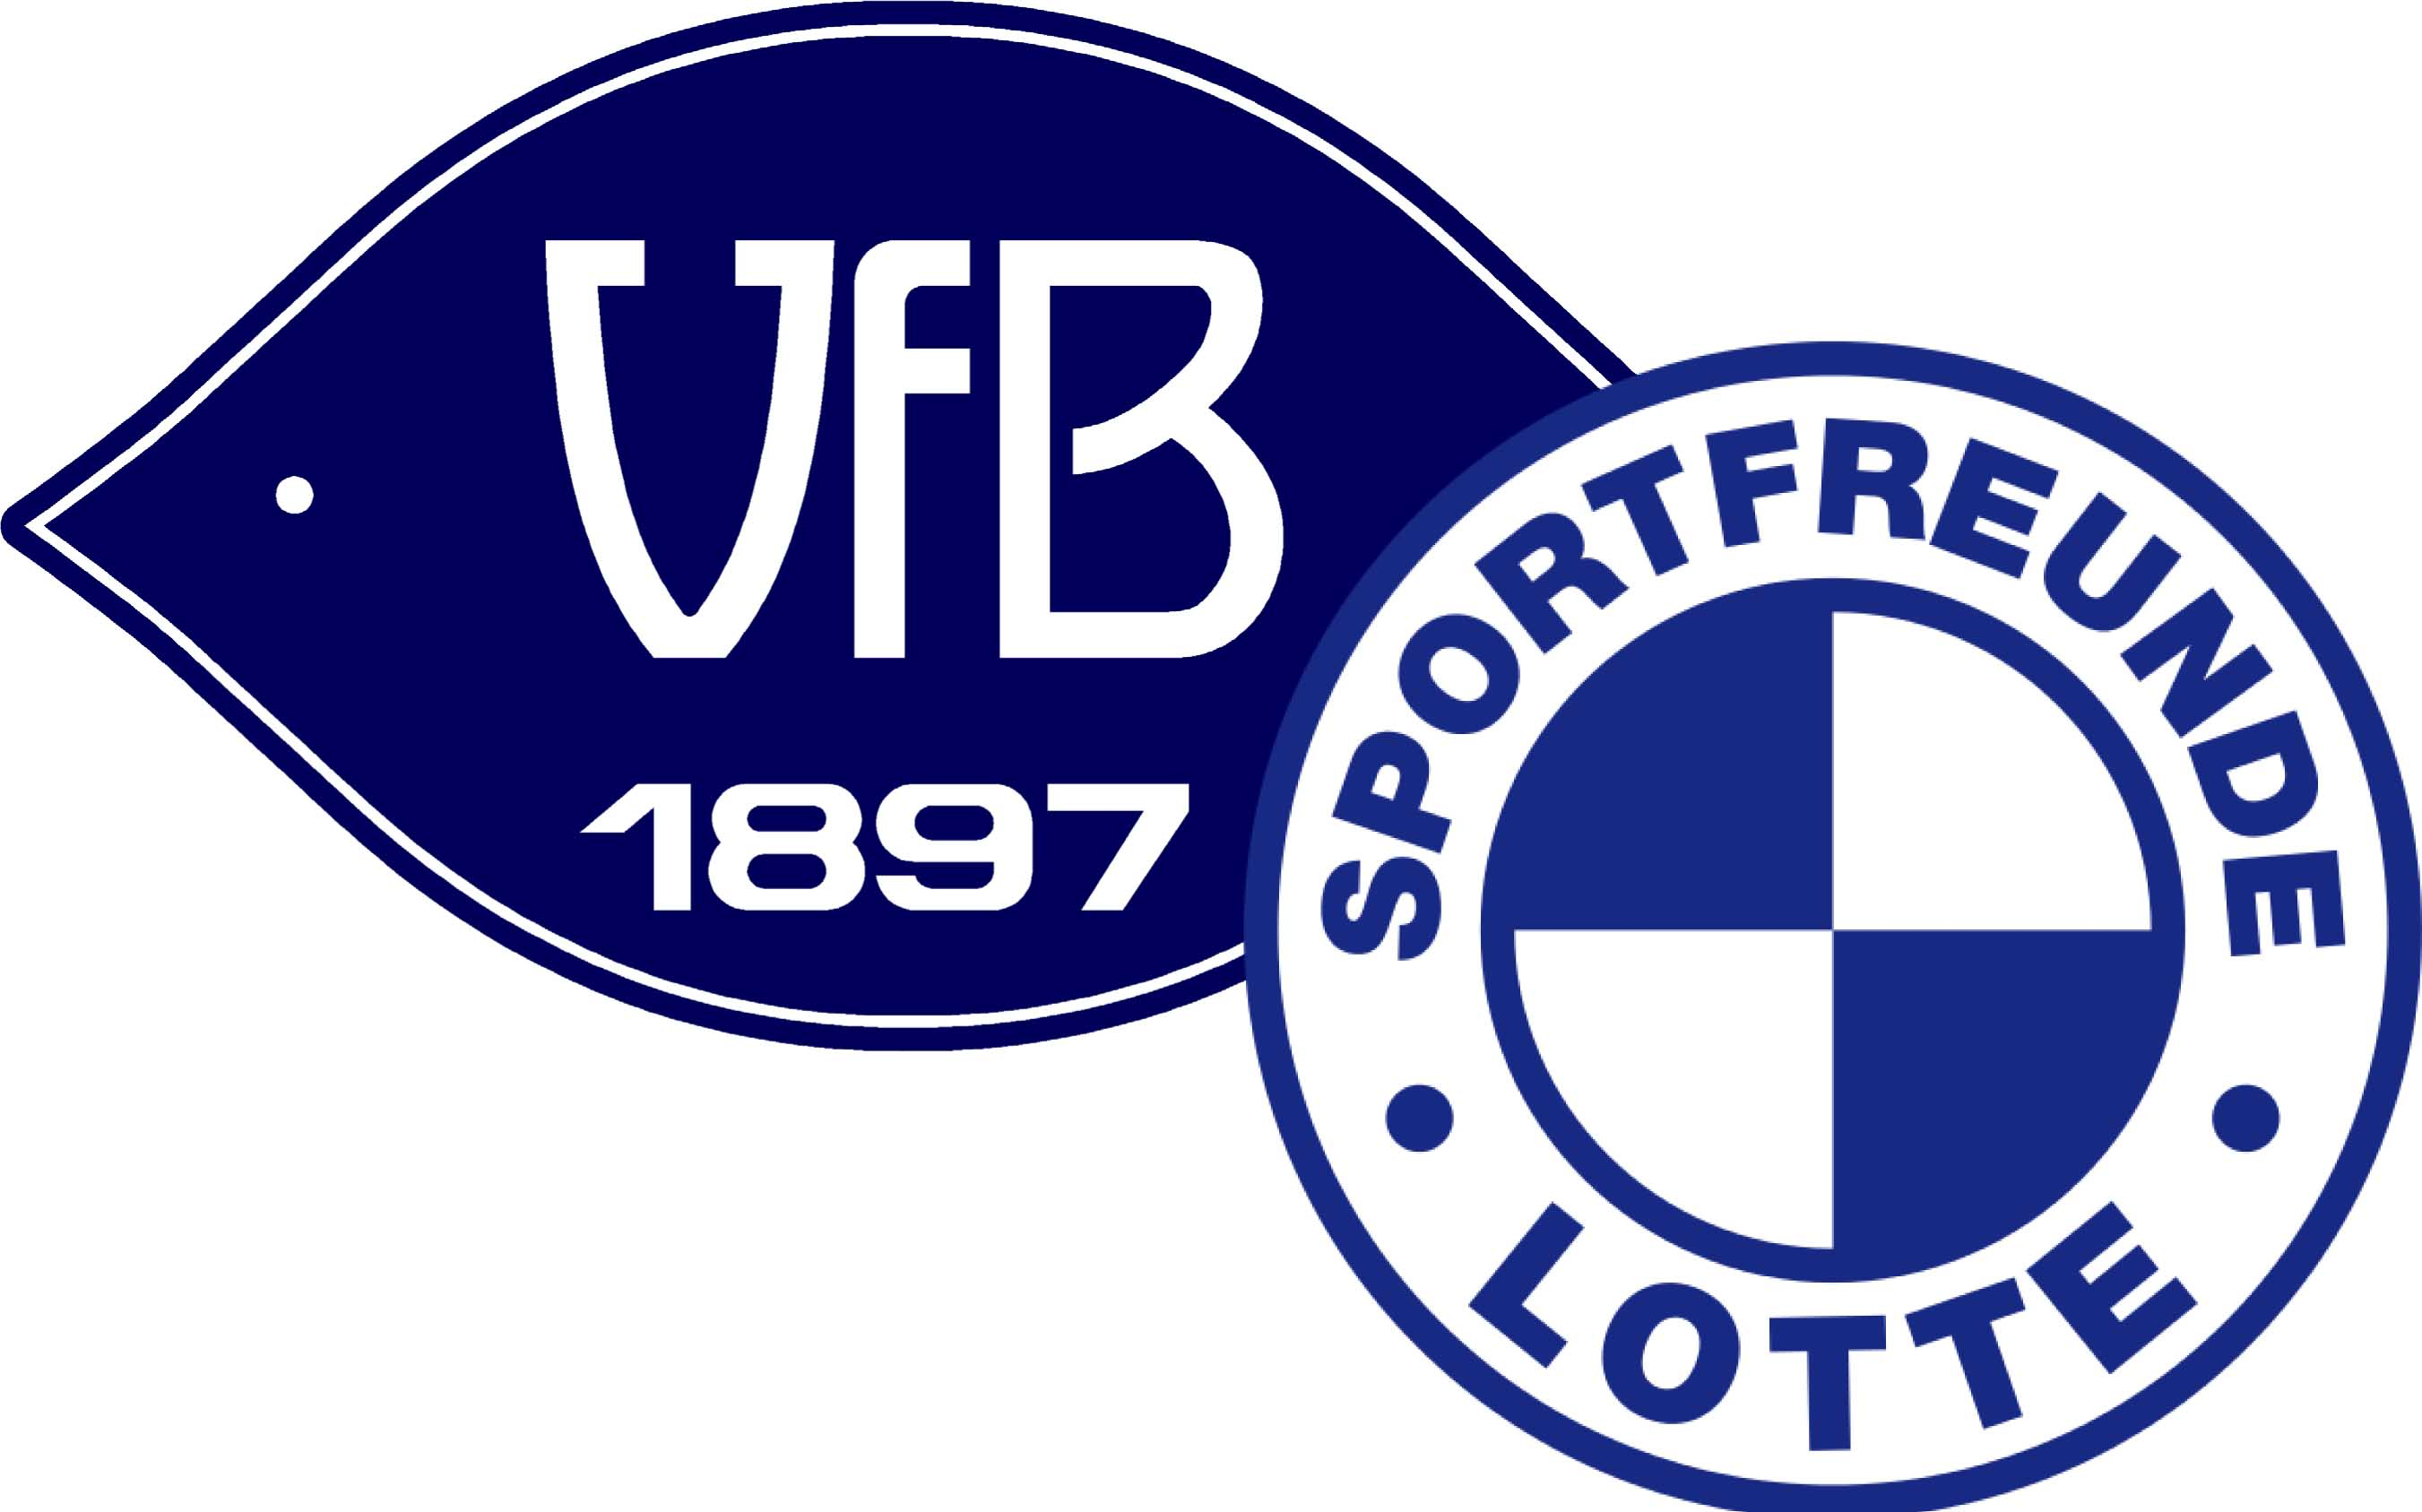 https://vfb-oldenburg.de/wp-content/uploads/Logos.jpg